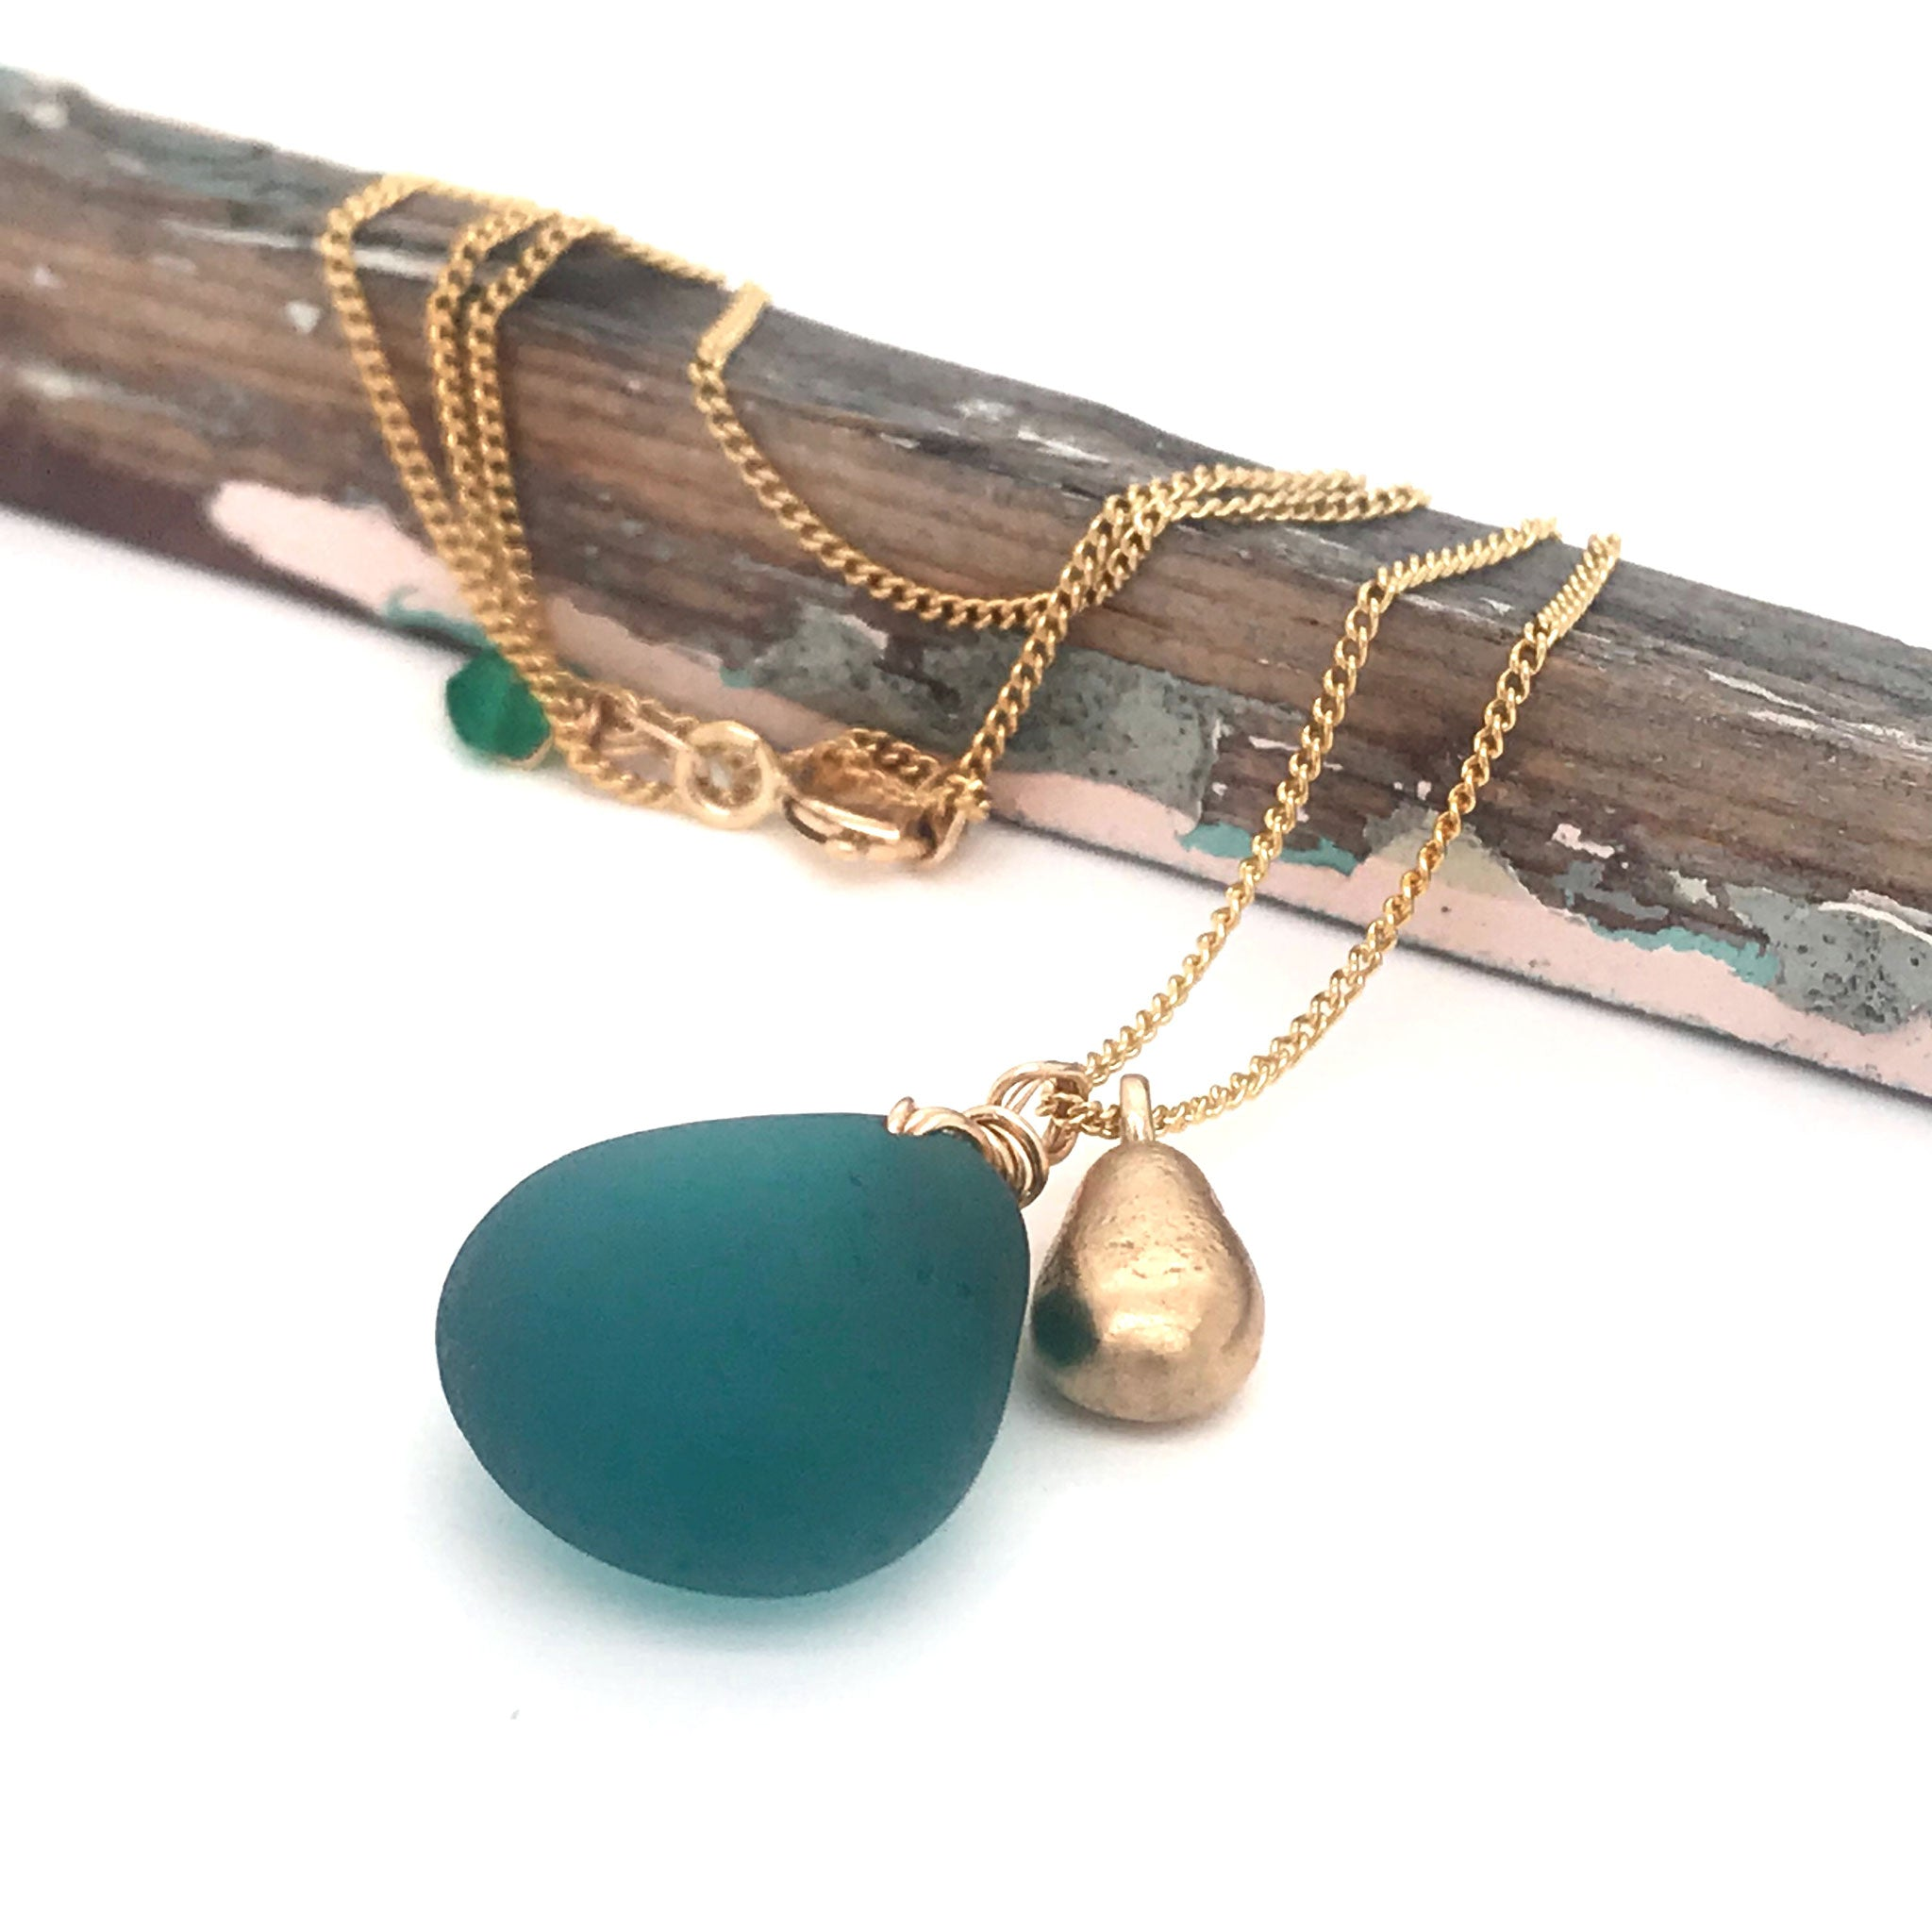 teal seaglass necklace on gold chain with solid 14k gold teardrop charm Kriket Broadhurst jewellery Christmas gift